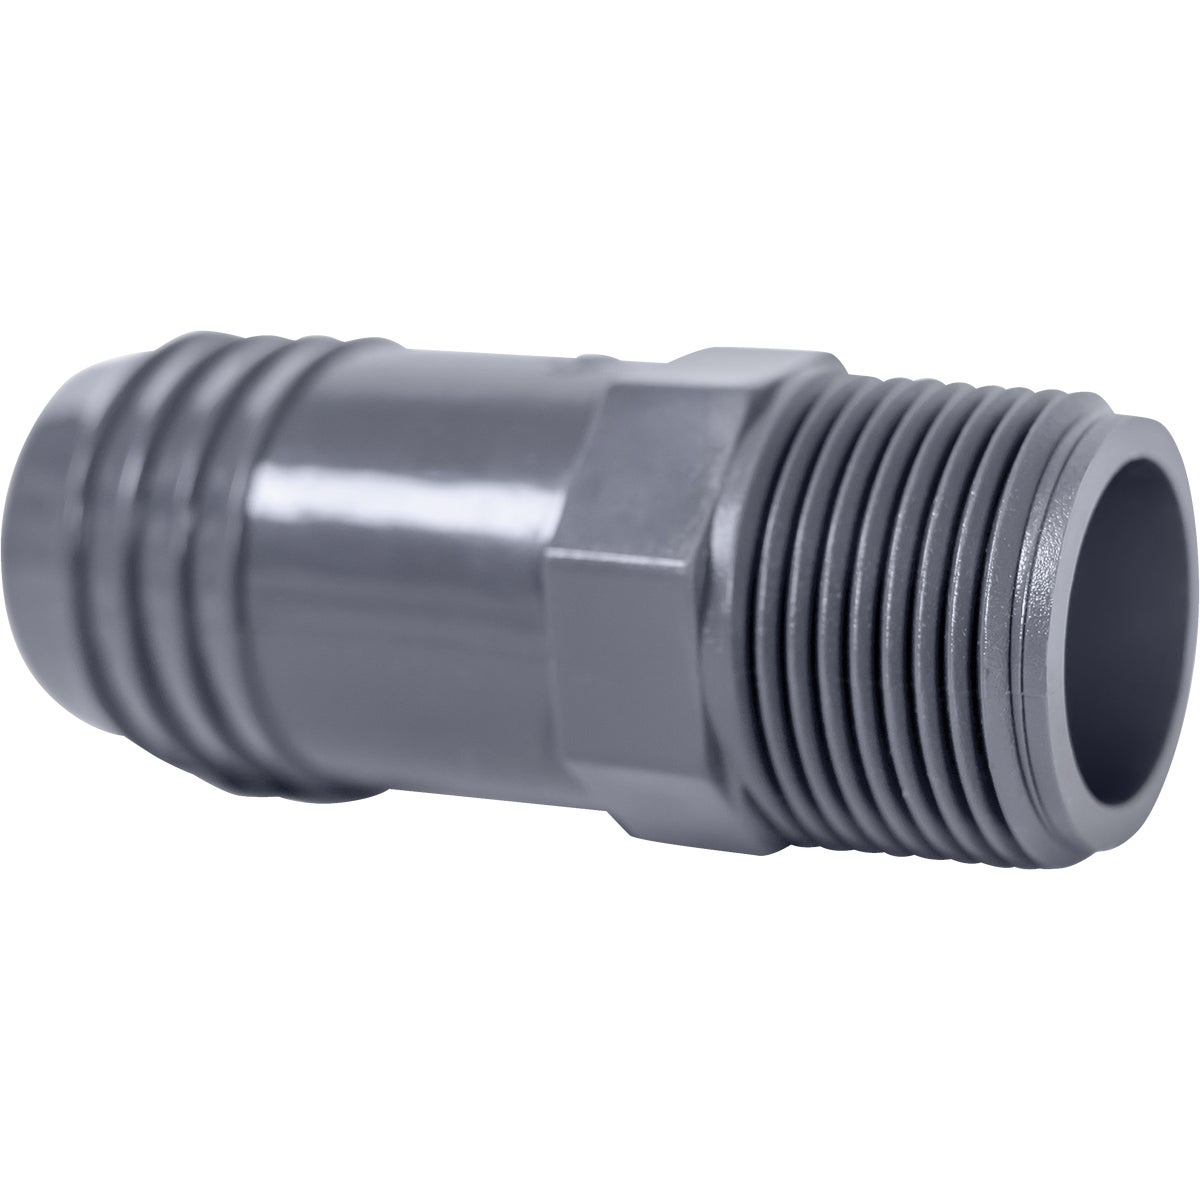 1X1-1/4 MIPXINS ADAPTER - 380404 by Genova Inc